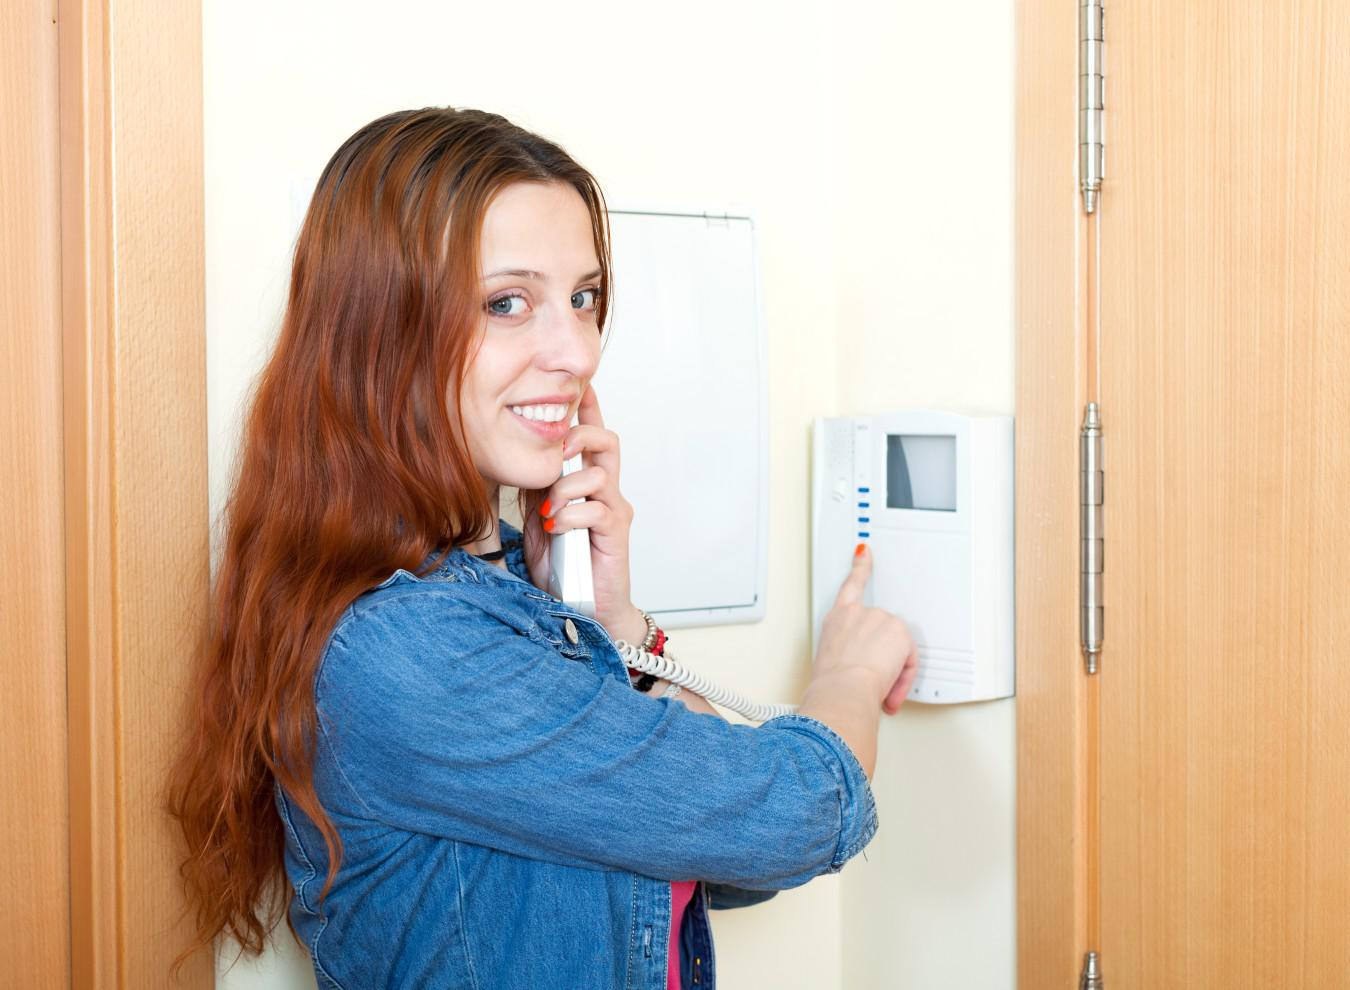 woman on phone using her home security alarm